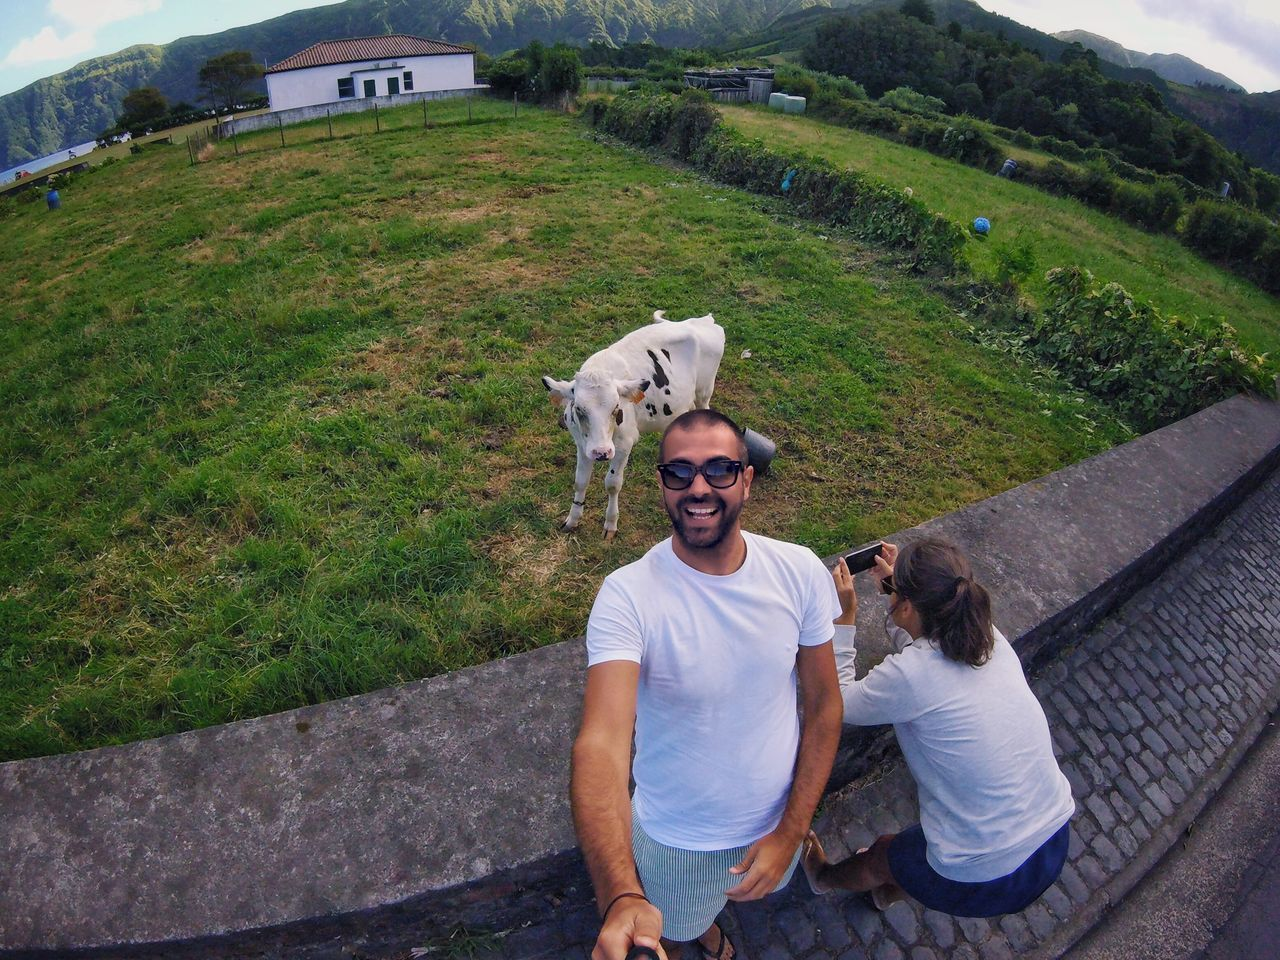 Looking At Camera Portrait Togetherness Pets Dog Happiness Mammal Real People Domestic Animals Outdoors Friendship Men Smiling People Adult Nature Day Adults Only Azores Selfie ✌ ThatsMe Gopro